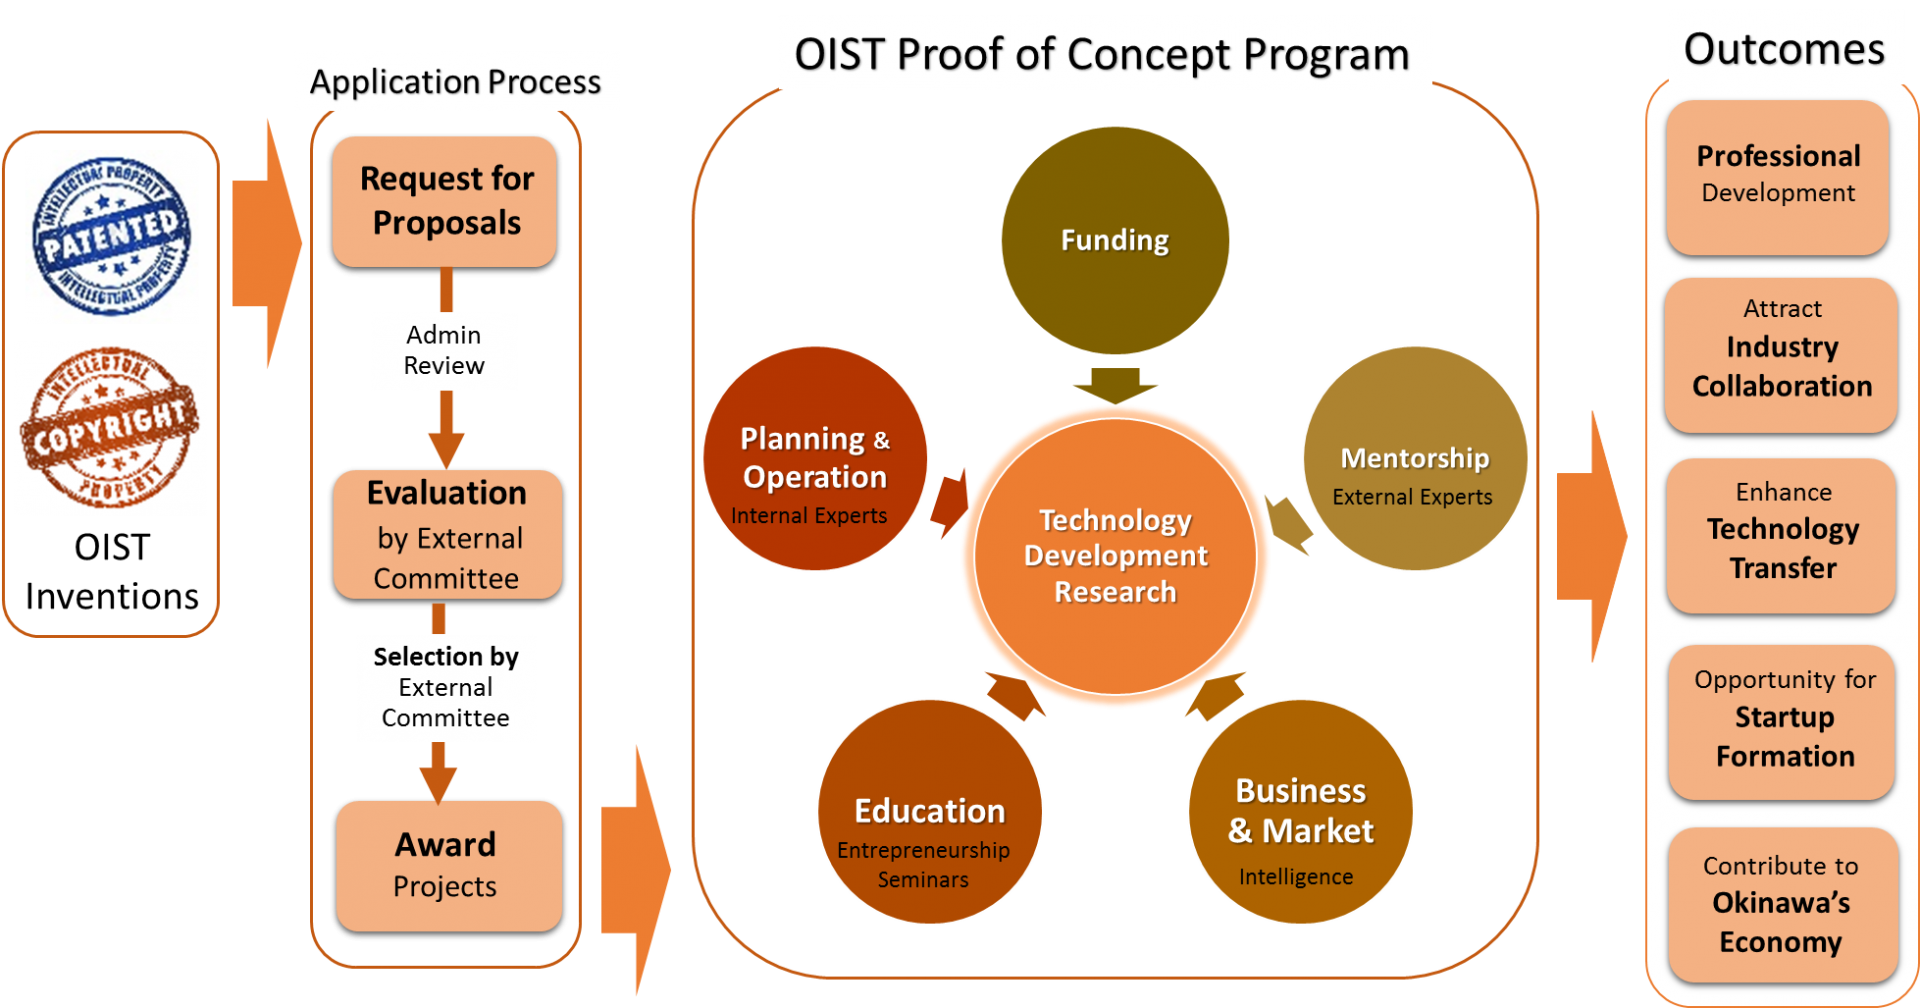 proof of concept | oist groups, Presentation templates